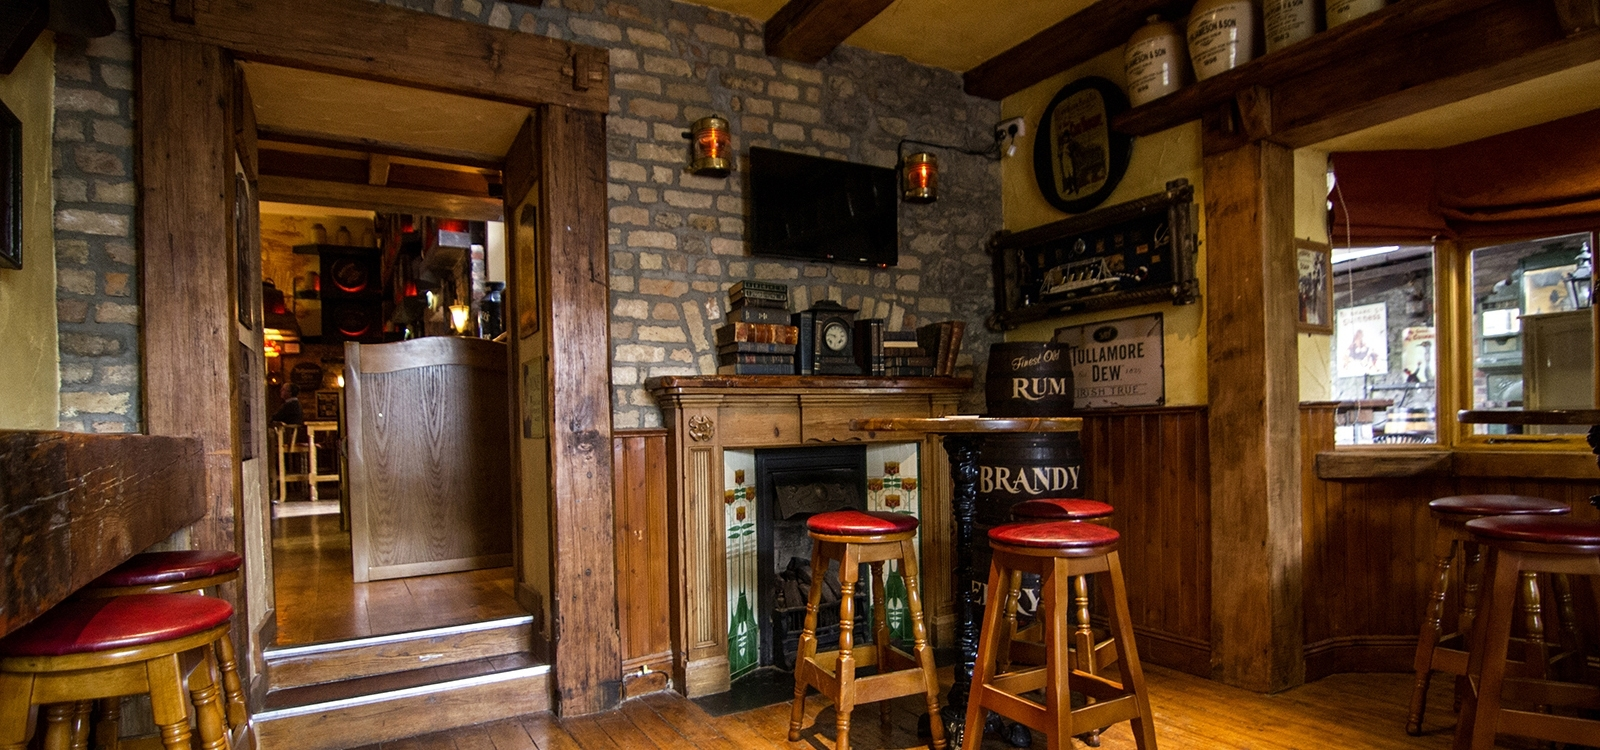 The Old School House pertaining to Old School House Beer Garden